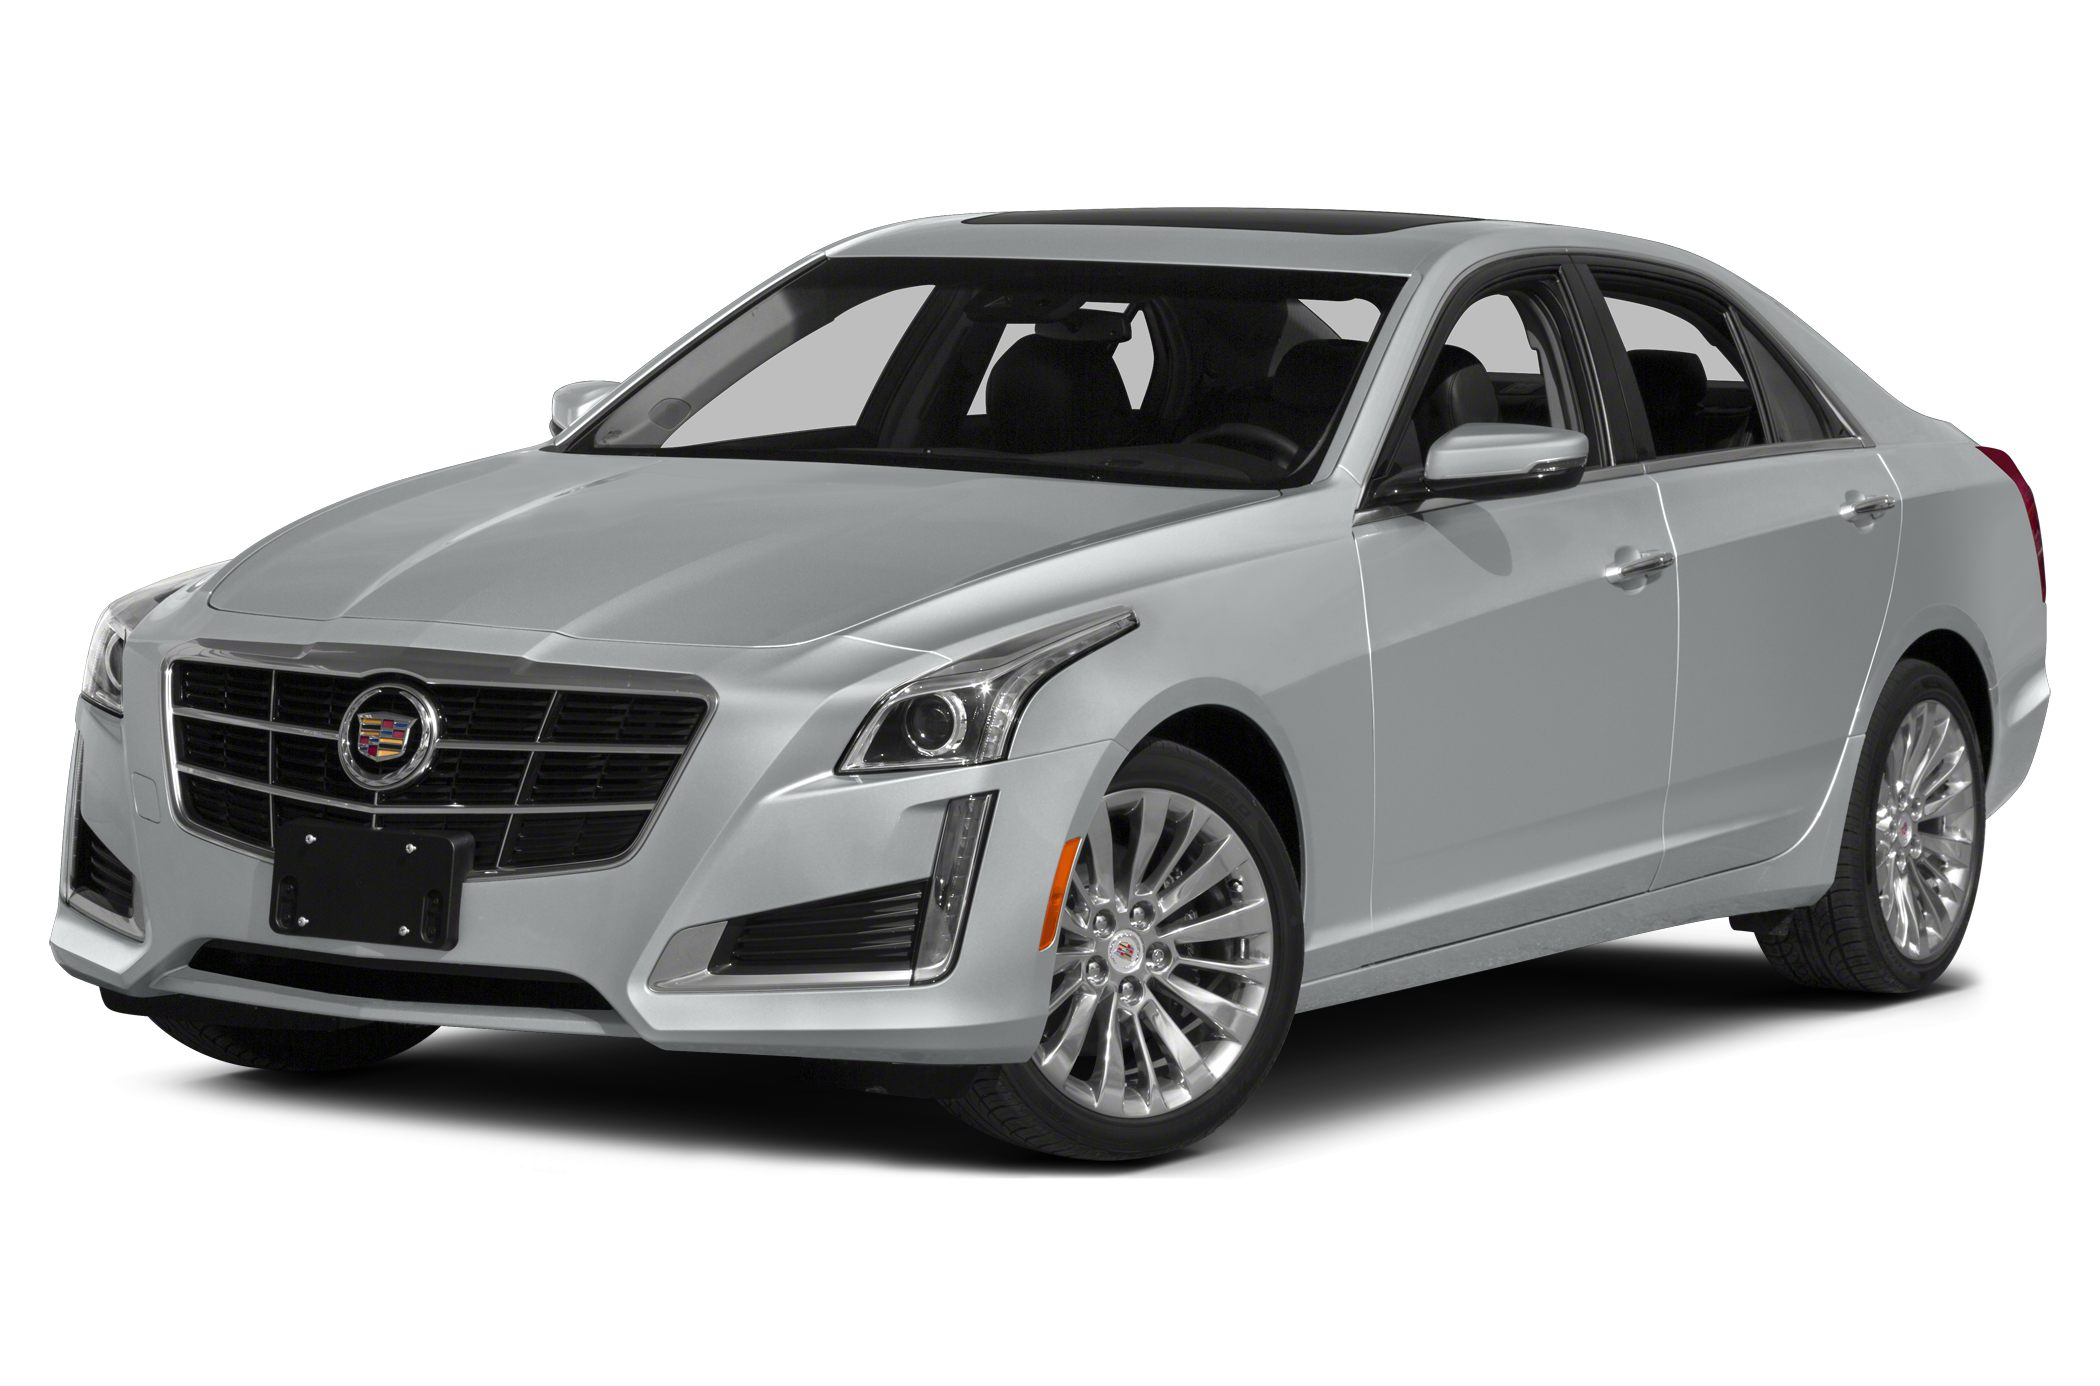 2014 Cadillac CTS Luxury LOW MILEAGE 2014 CADILLAC CTS SEDAN LUXURY RWDCLEAN CAR FAXONE OWNER